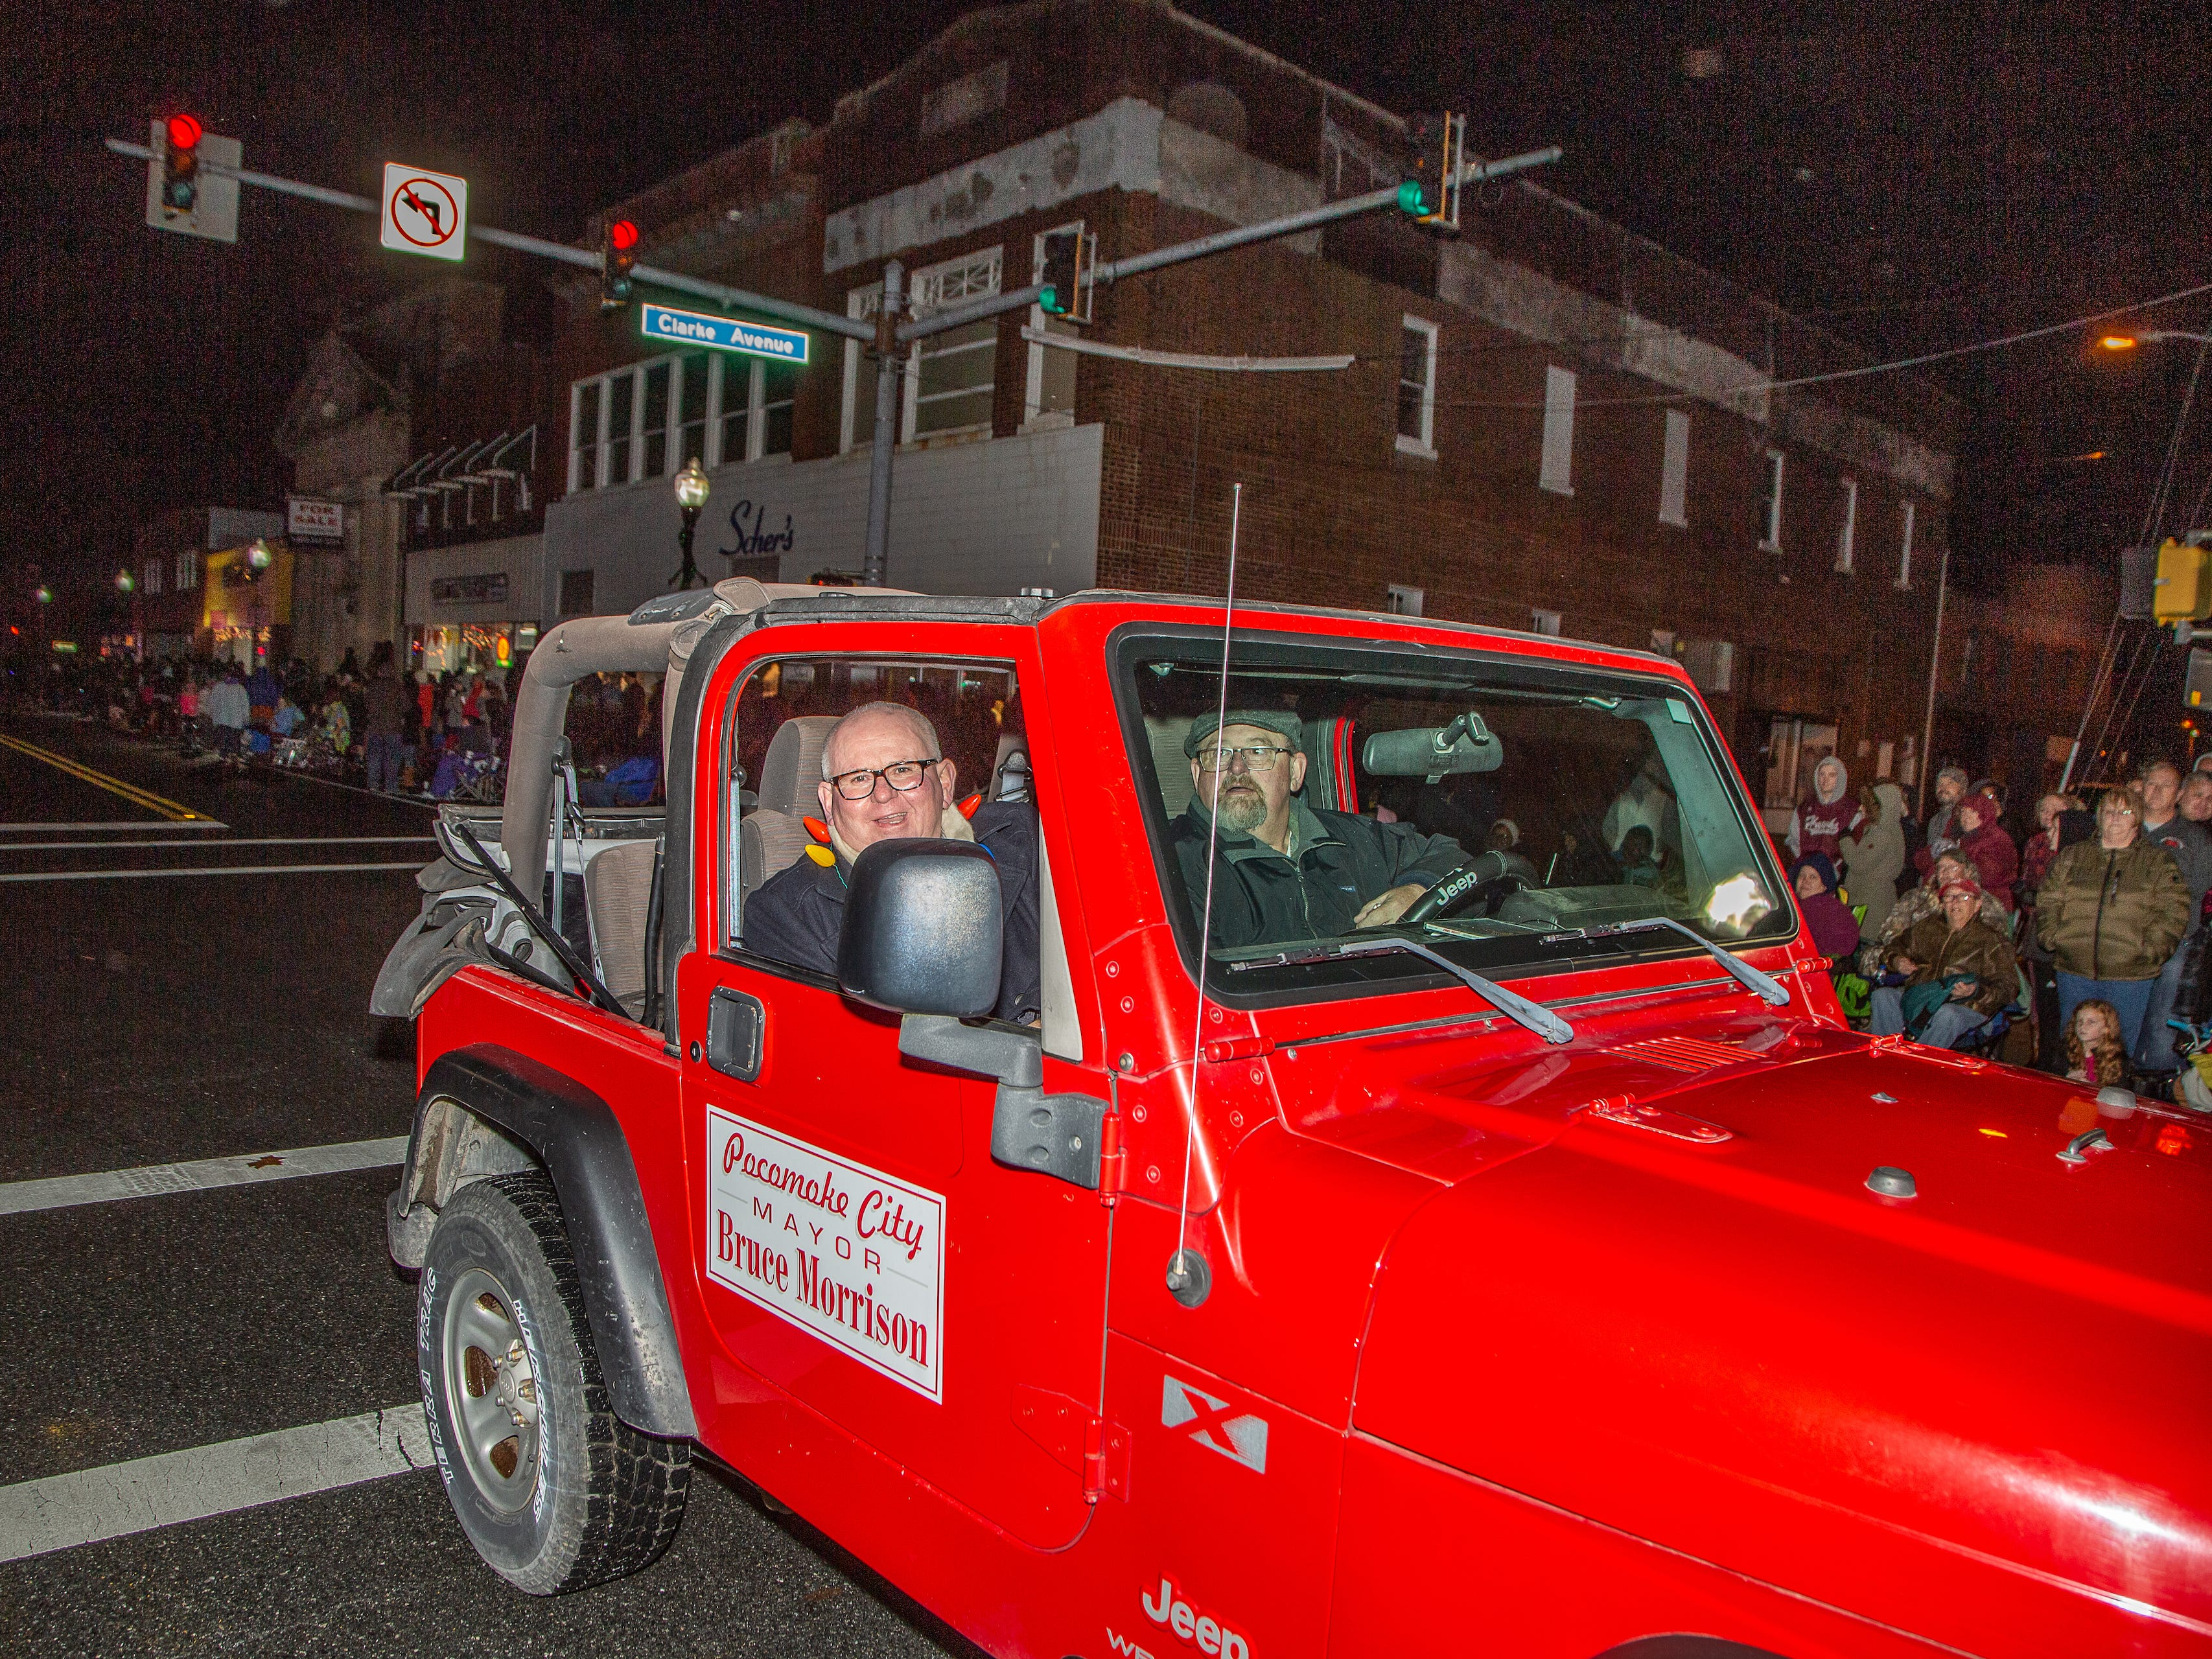 Pocomoke City Mayor Bruce Morrison leads the annual Christmas parade on Nov. 26.